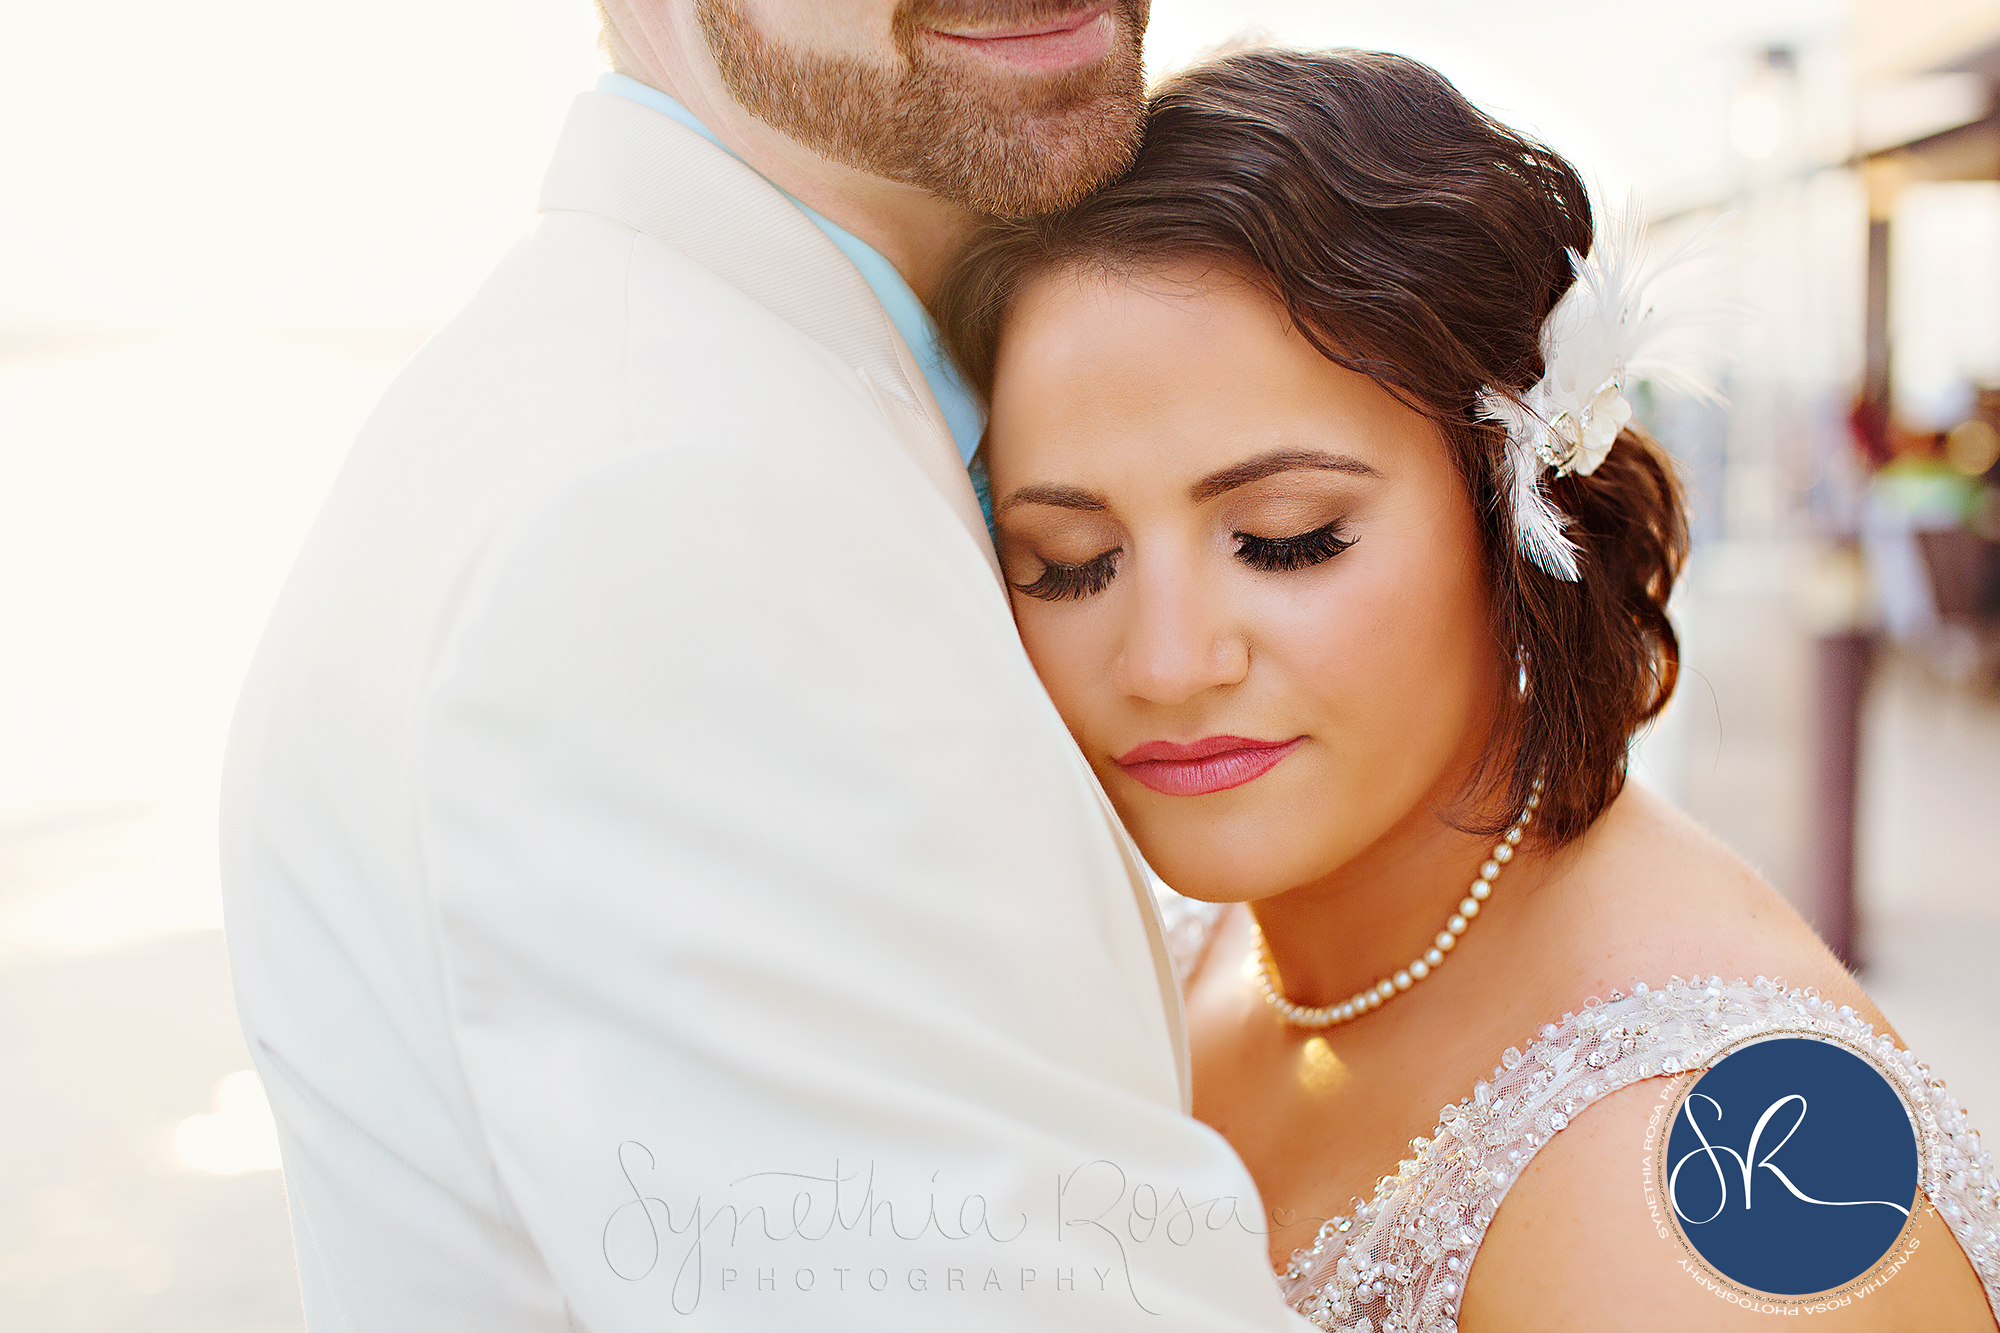 Wedding Story Packages start at $1,400 plus tax    All wedding stories include a high end digital file package of ALL top 100+ images.    ***Pricing is subject to change at anytime, without notice and non-negotiable***